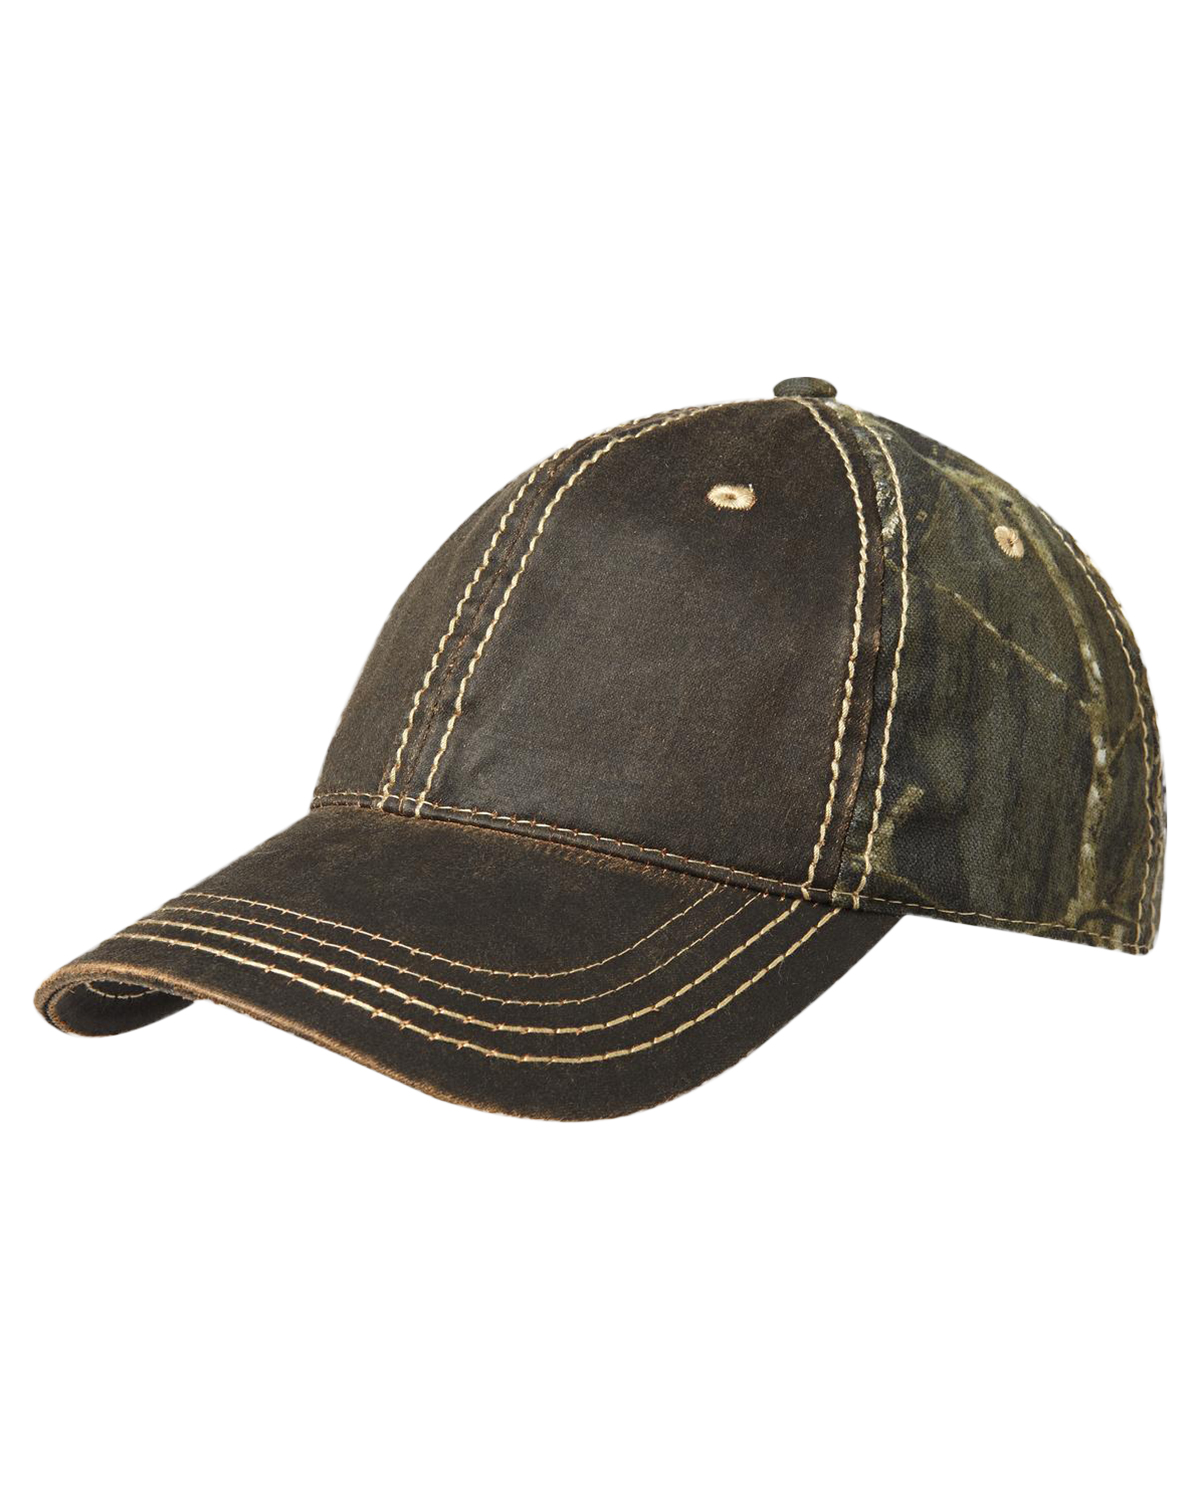 Port Authority C819 Men Pigt-Dyed Camouflage Cap at GotApparel